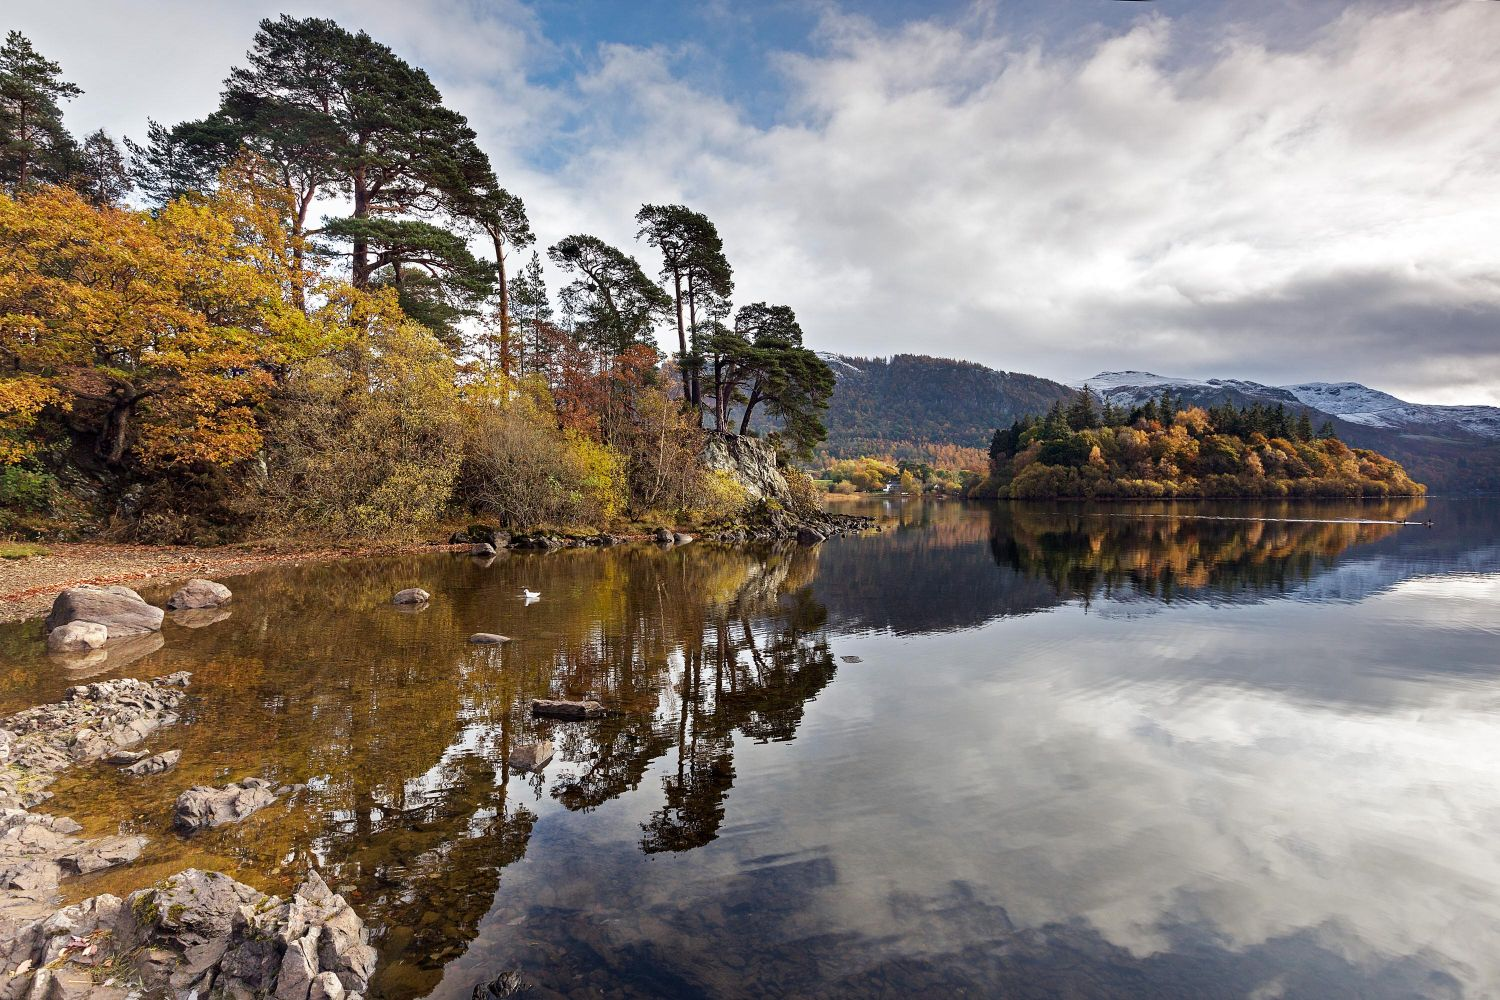 Late Autumn at Friars Crag taken from a different perspective